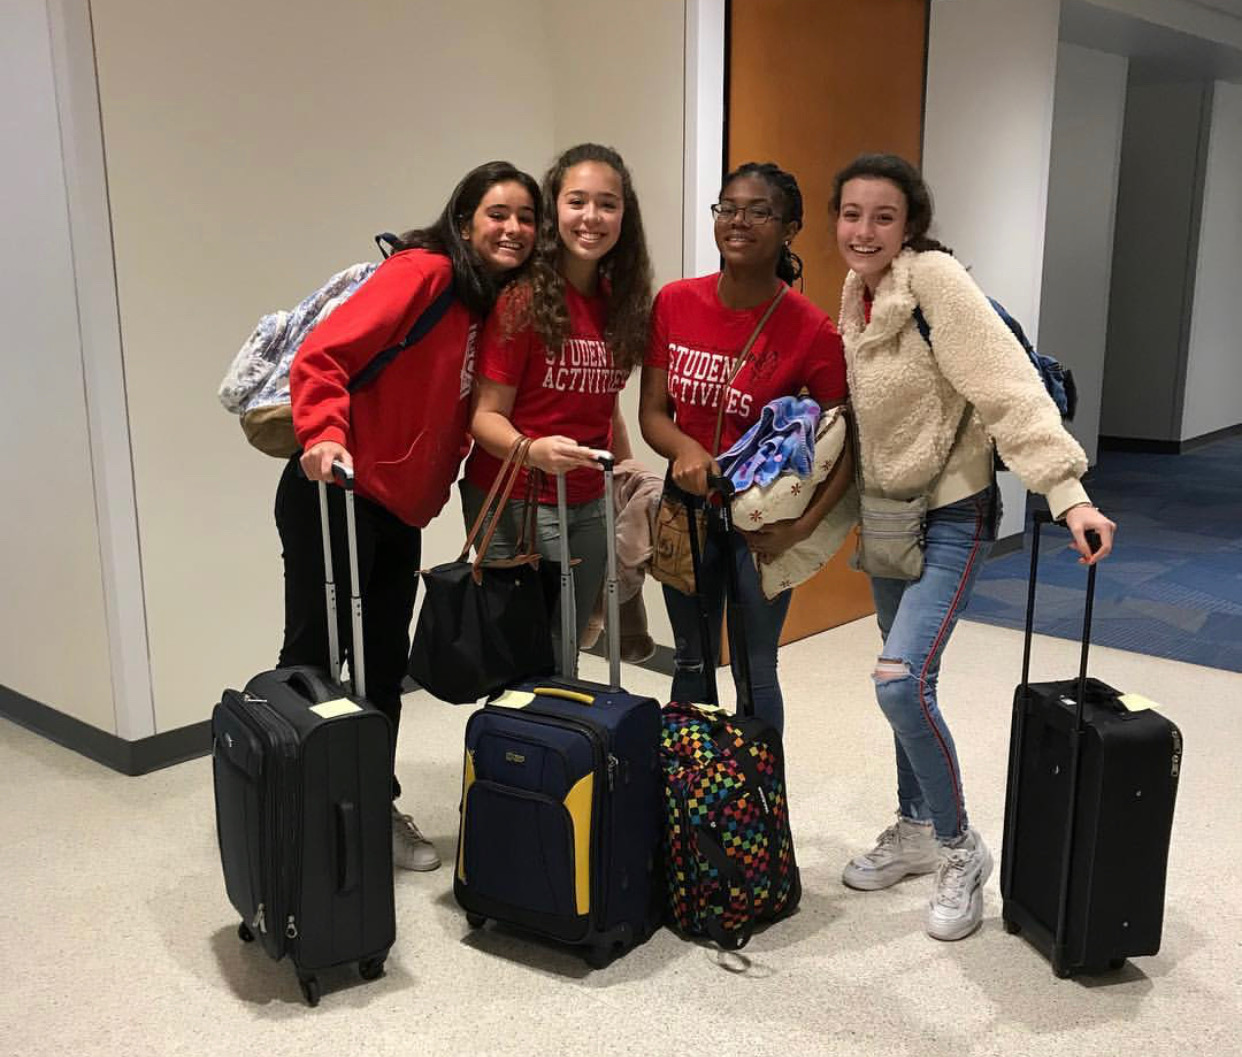 Sophomores  Irene Martinez, Sara Rabell, Sofia Rebull and Imgard Bonheur pose for a picture shortly after arriving on campus.